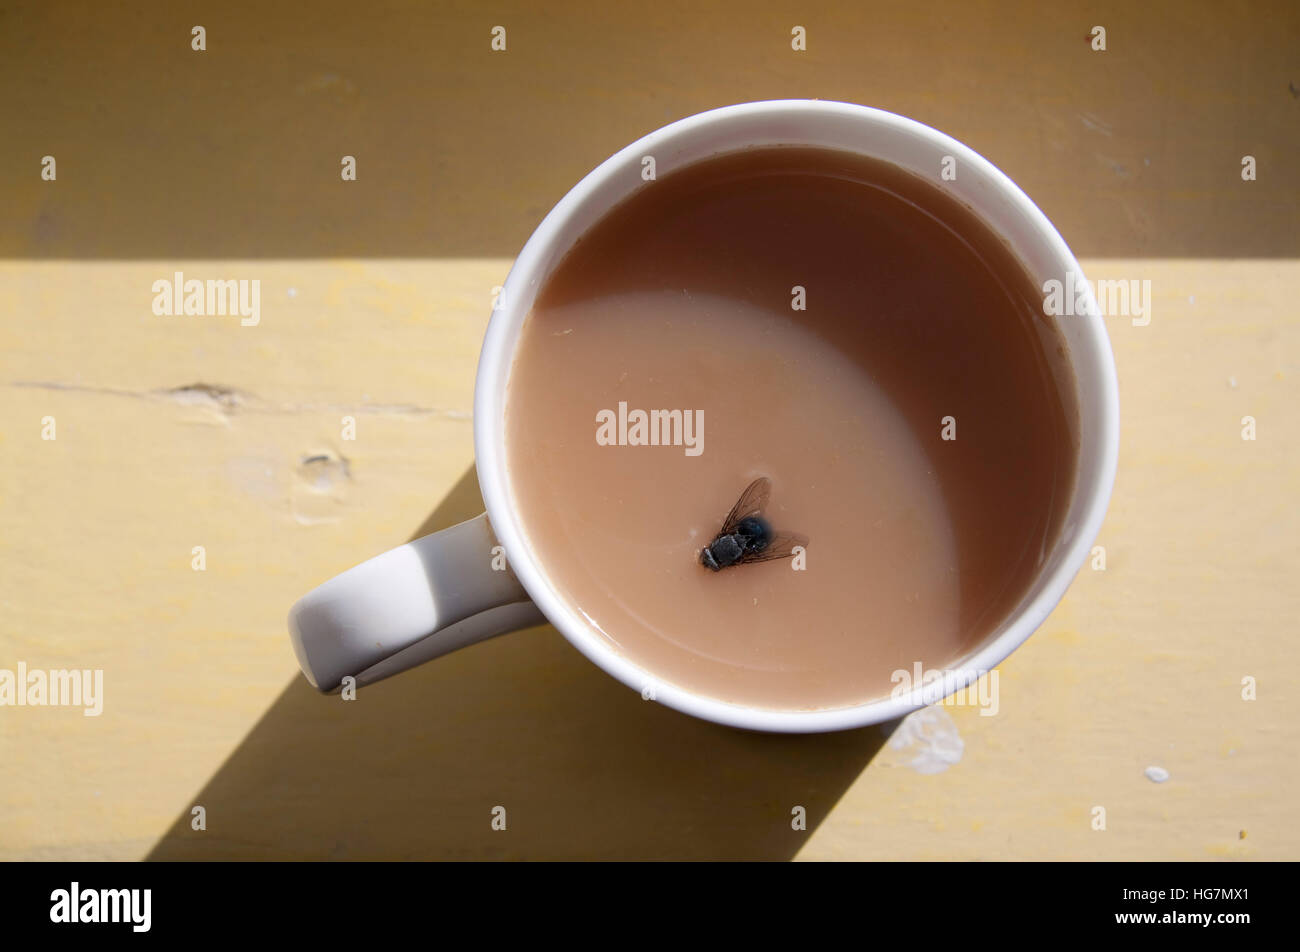 Fly in a cup of tea Stock Photo